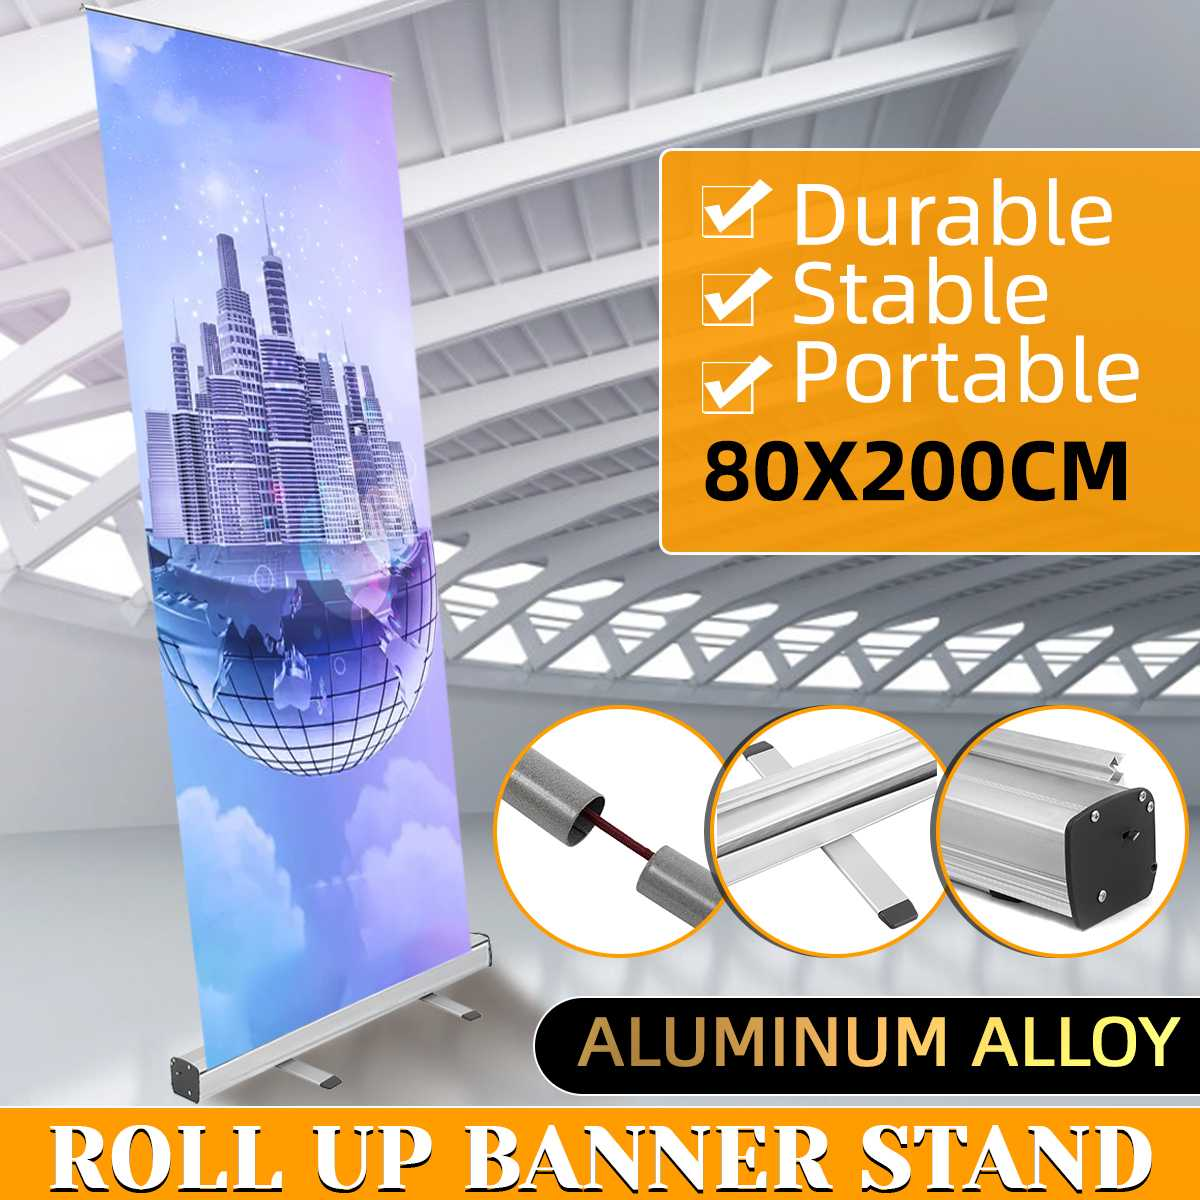 80x200cm Indoor Banner Sign Stand Poster Display Holder Roll Up Floor Stand Aluminum Alloy Advertising Poster Stand Bag Kit